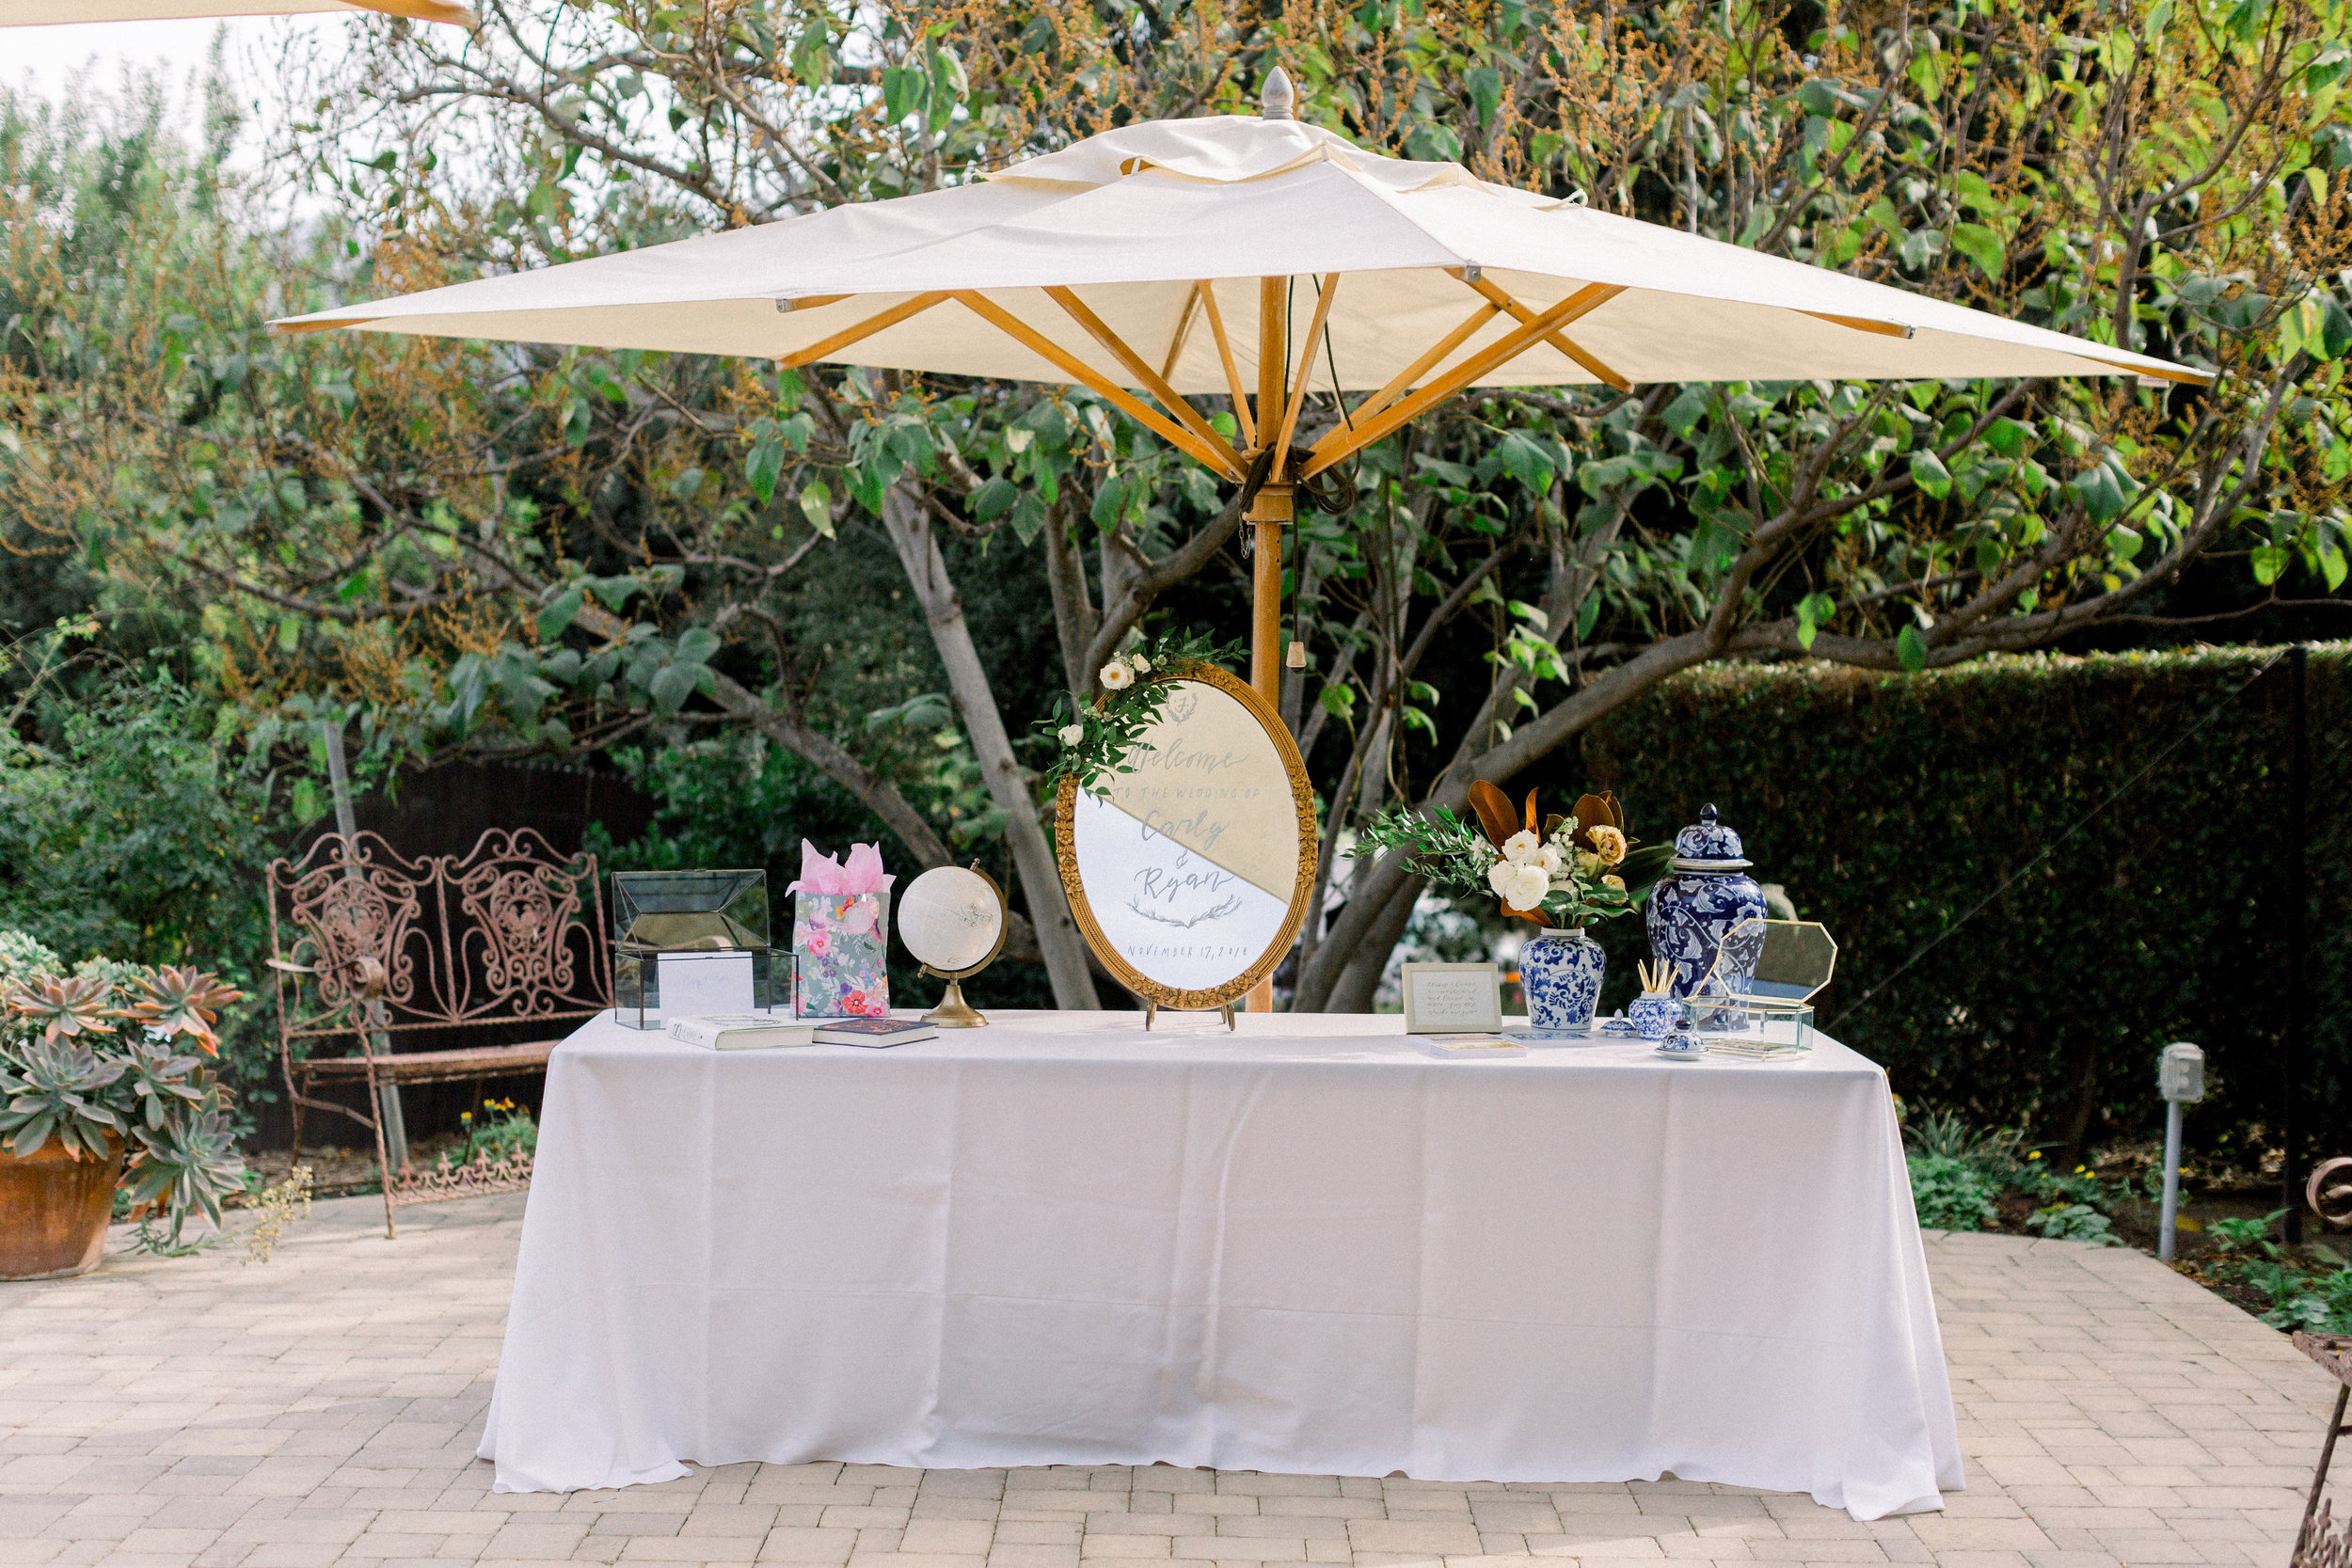 8' TABLE WITH LINEN FOR GUESTBOOK AND GIFTS - INCLUDED